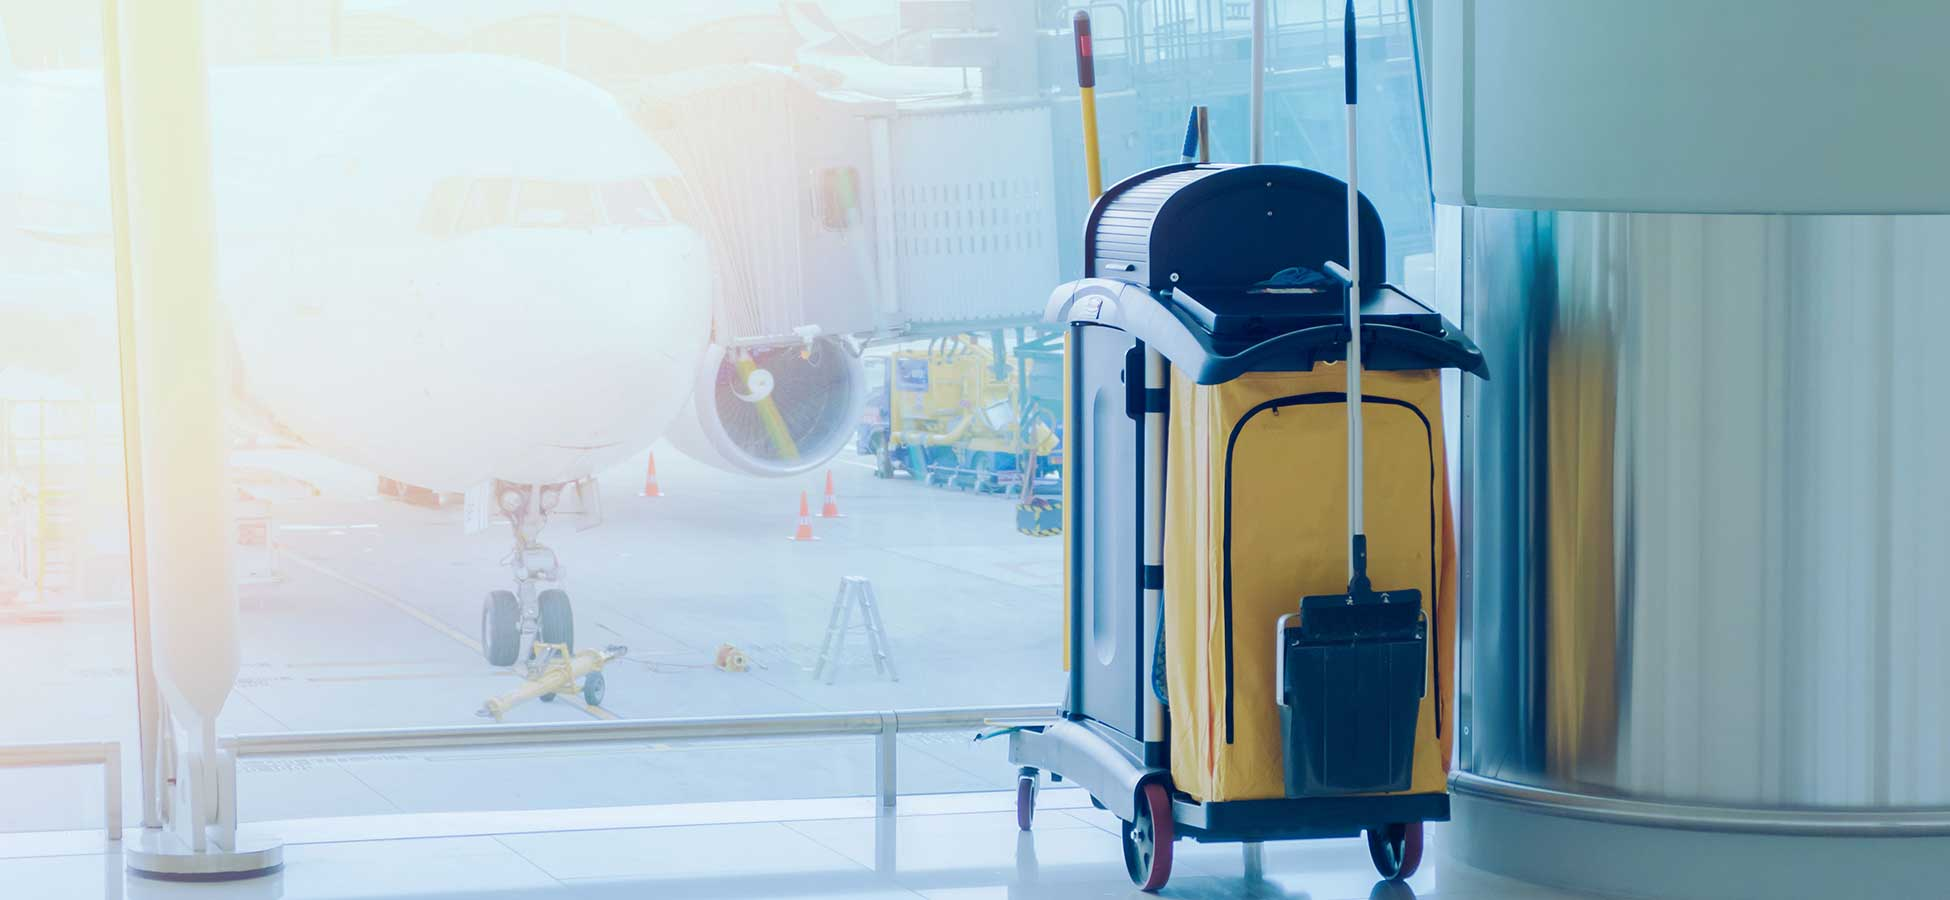 A Clean Sweep - Intelligent Sanitation Management Paves the Way for Safer Air Travel